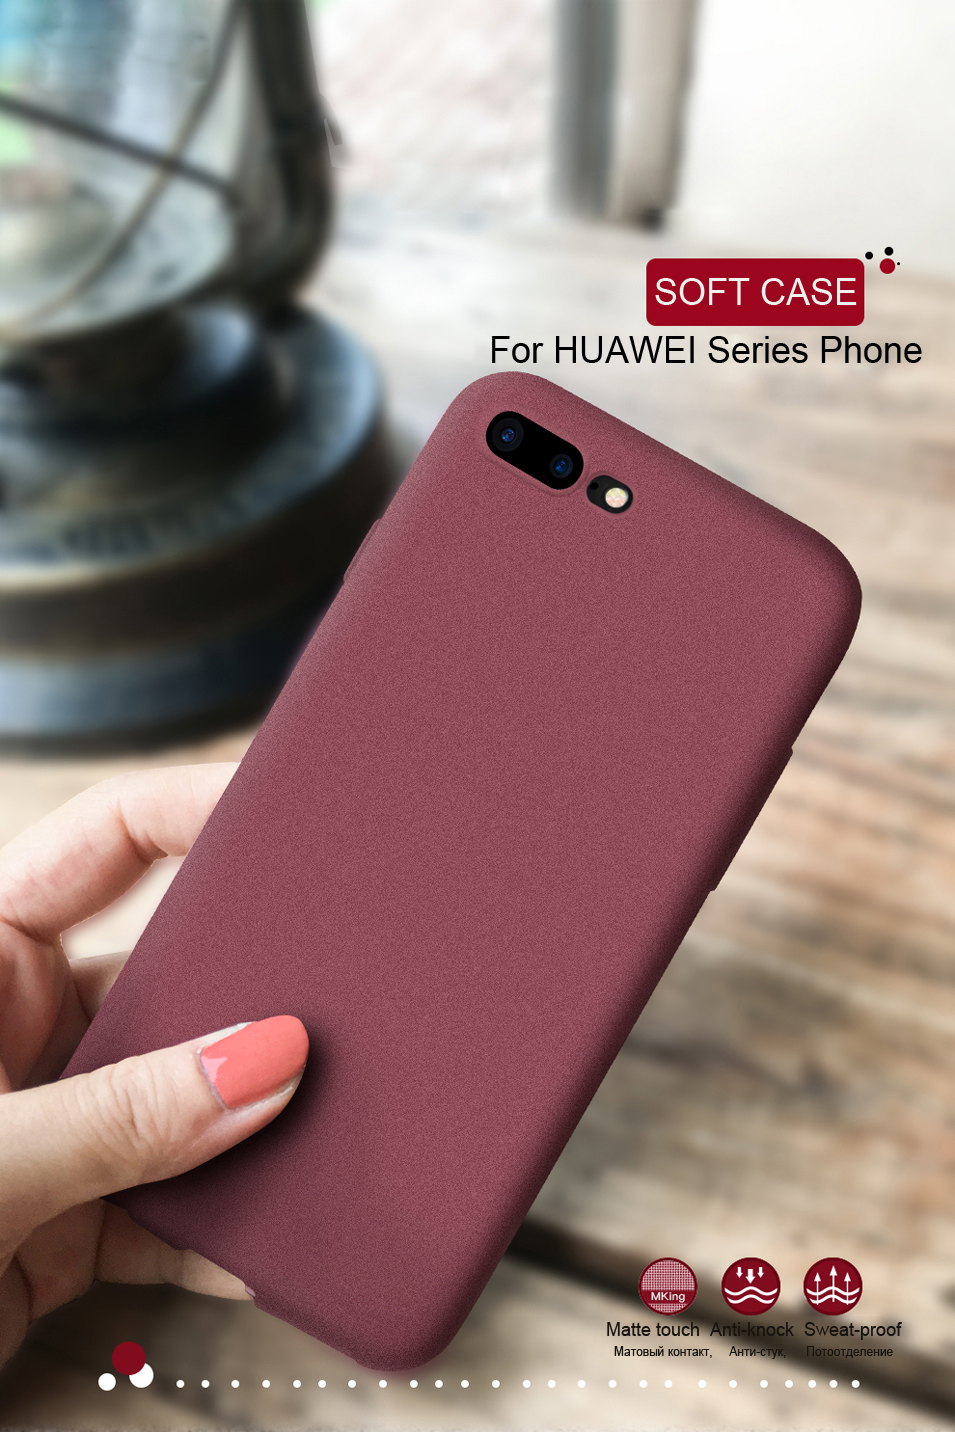 LECAYEE For Huawei Honor A7 Pro Phone Cases for Honor 8 9 10 Lite 7X 6C Pro 5A 6X View 10 Case Cover Matte Touch Soft TPU Bumper (7)